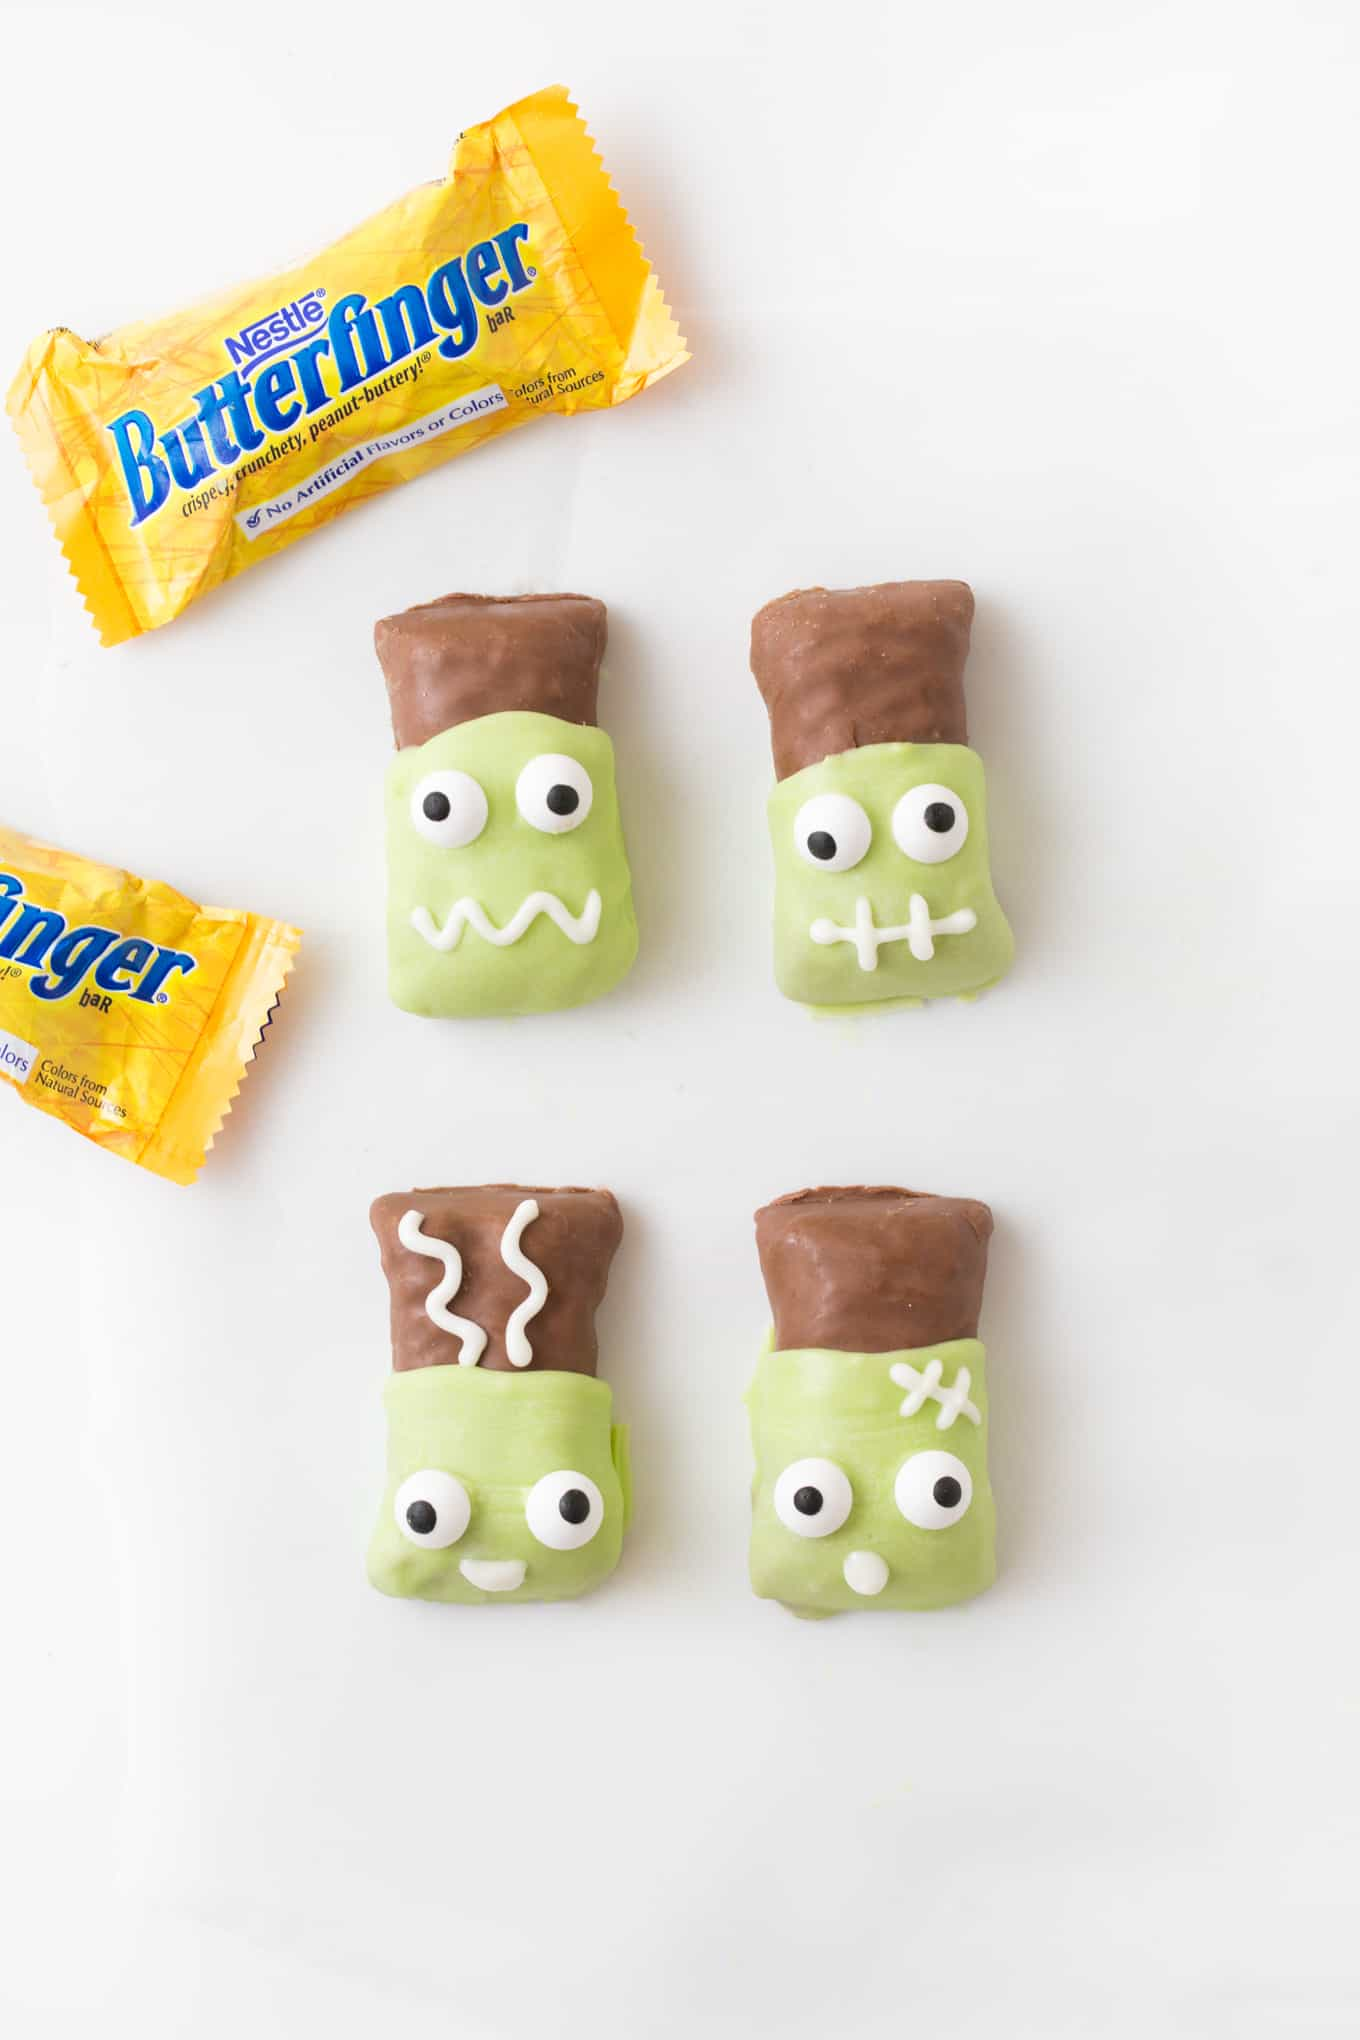 Butterfinger candy bars that have been dipped in melted green almond bark then decorated with candy eyeballs to look like Frankenstein and Frankenstein's bride.